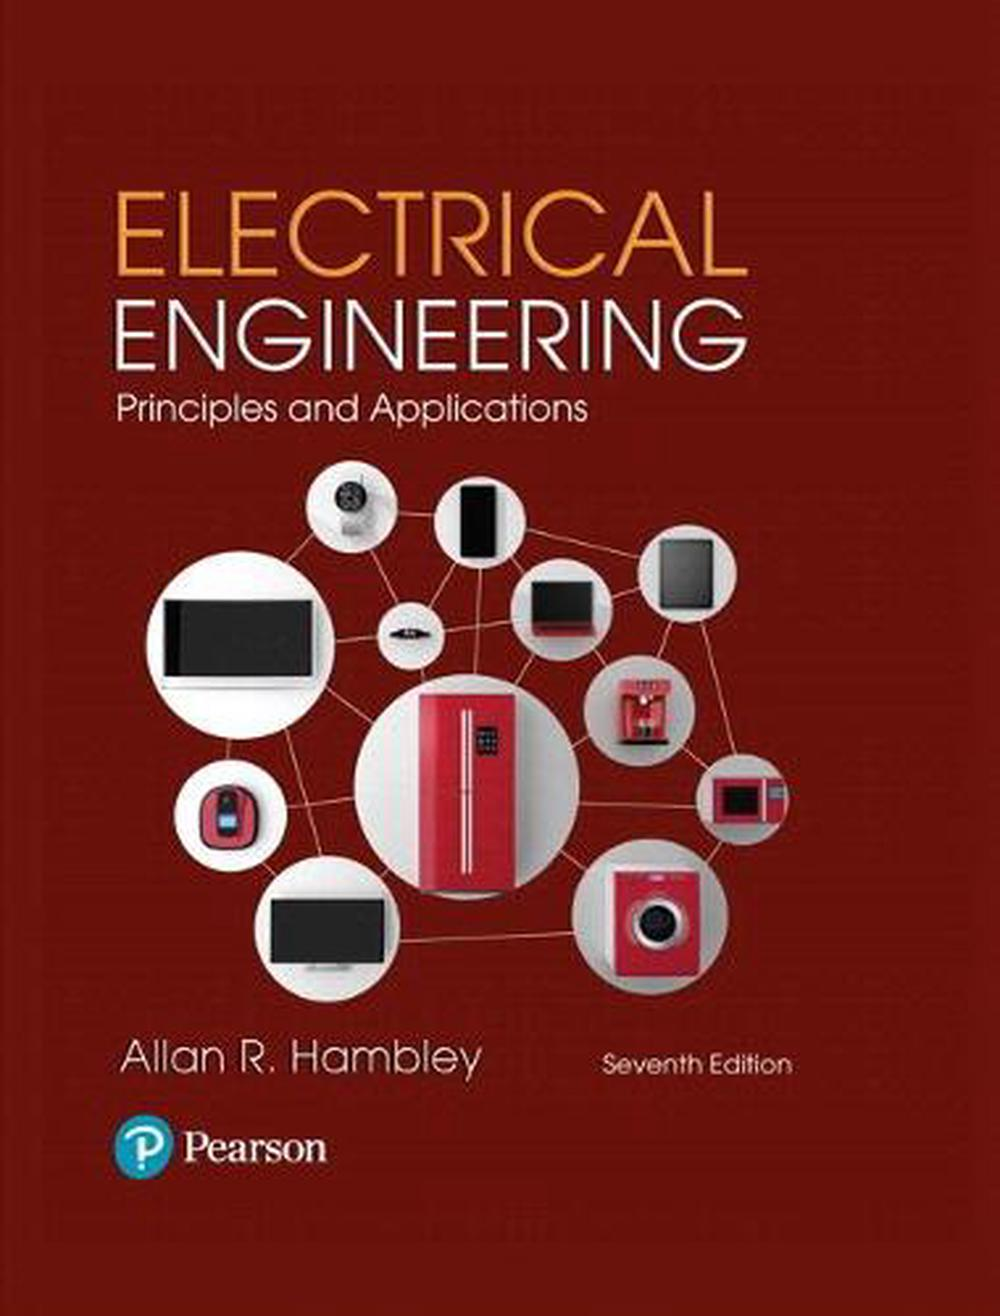 Electrical Engineering By Allan R Hambley Hardcover 9780134484143 Books